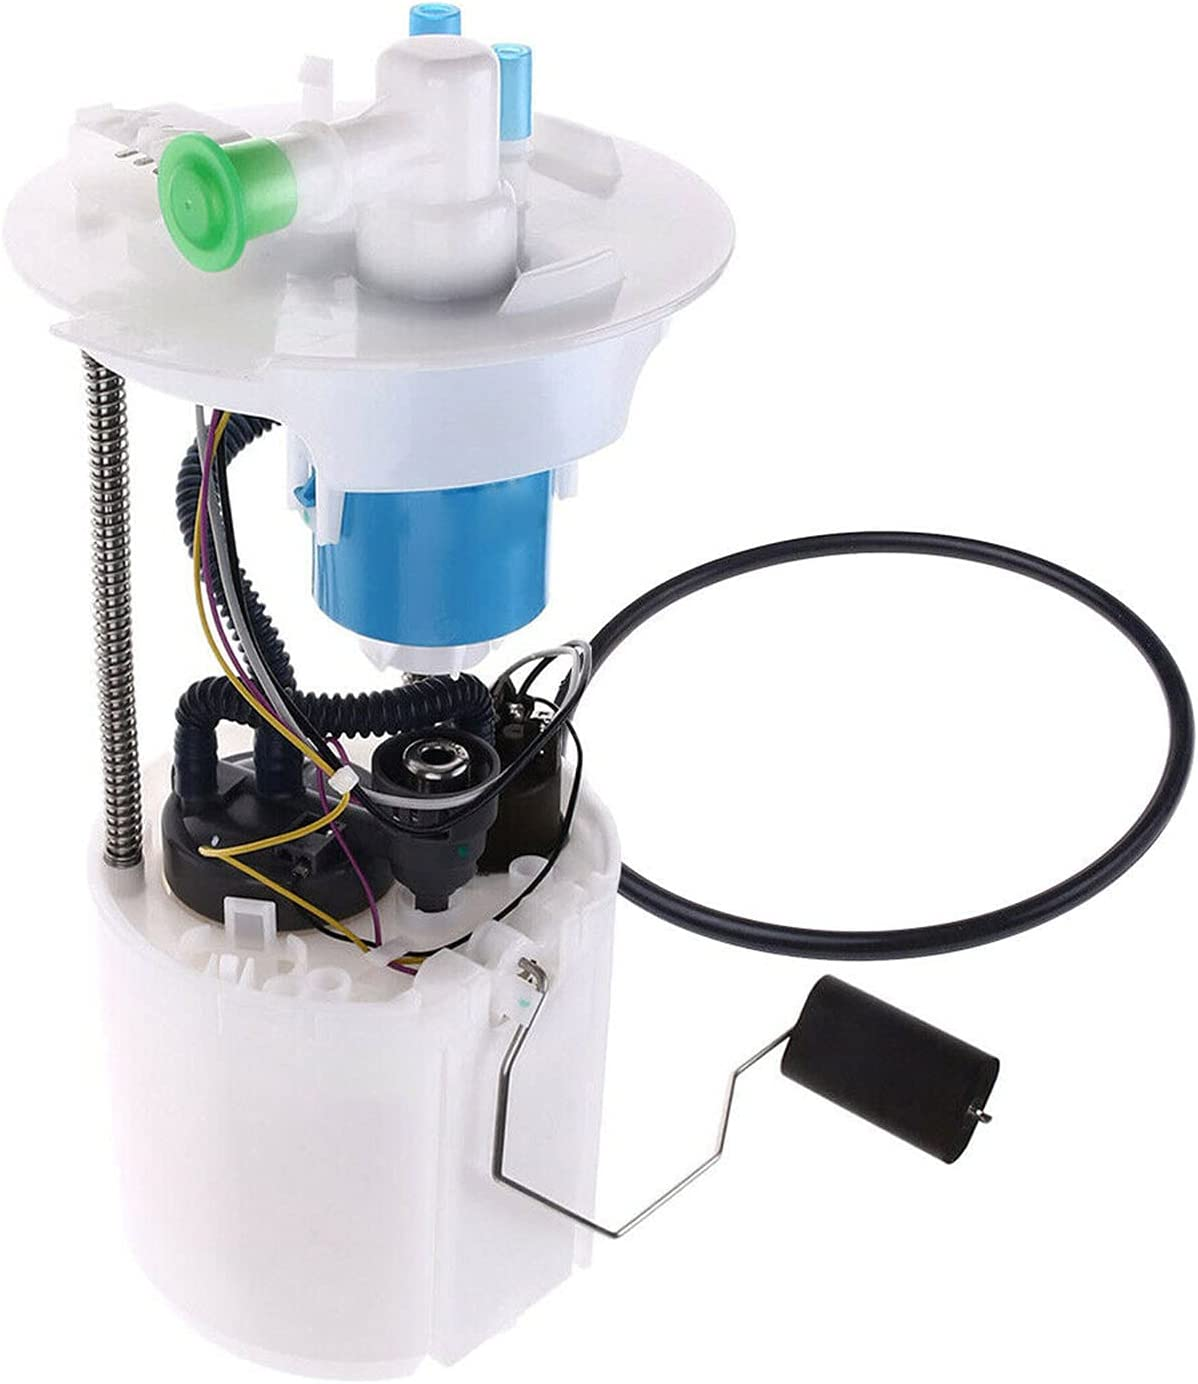 Hconcet Fuel New product Pump Assembly w Compatible Bu Max 65% OFF Pressure with Sensor